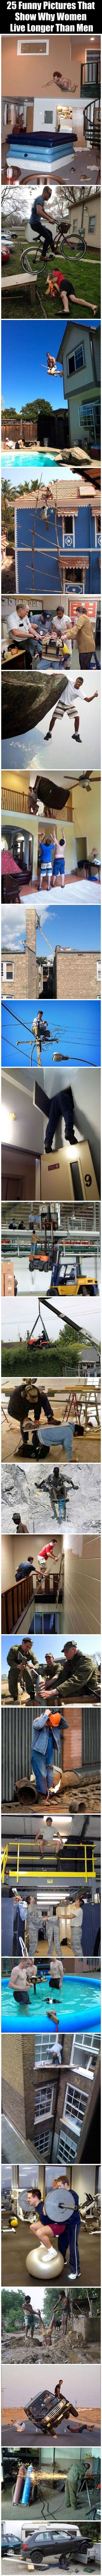 25 Funny Pictures That Show Why Women Live Longer Than Men funny men women lol hilarious humor omg funny pictures wtf funny images